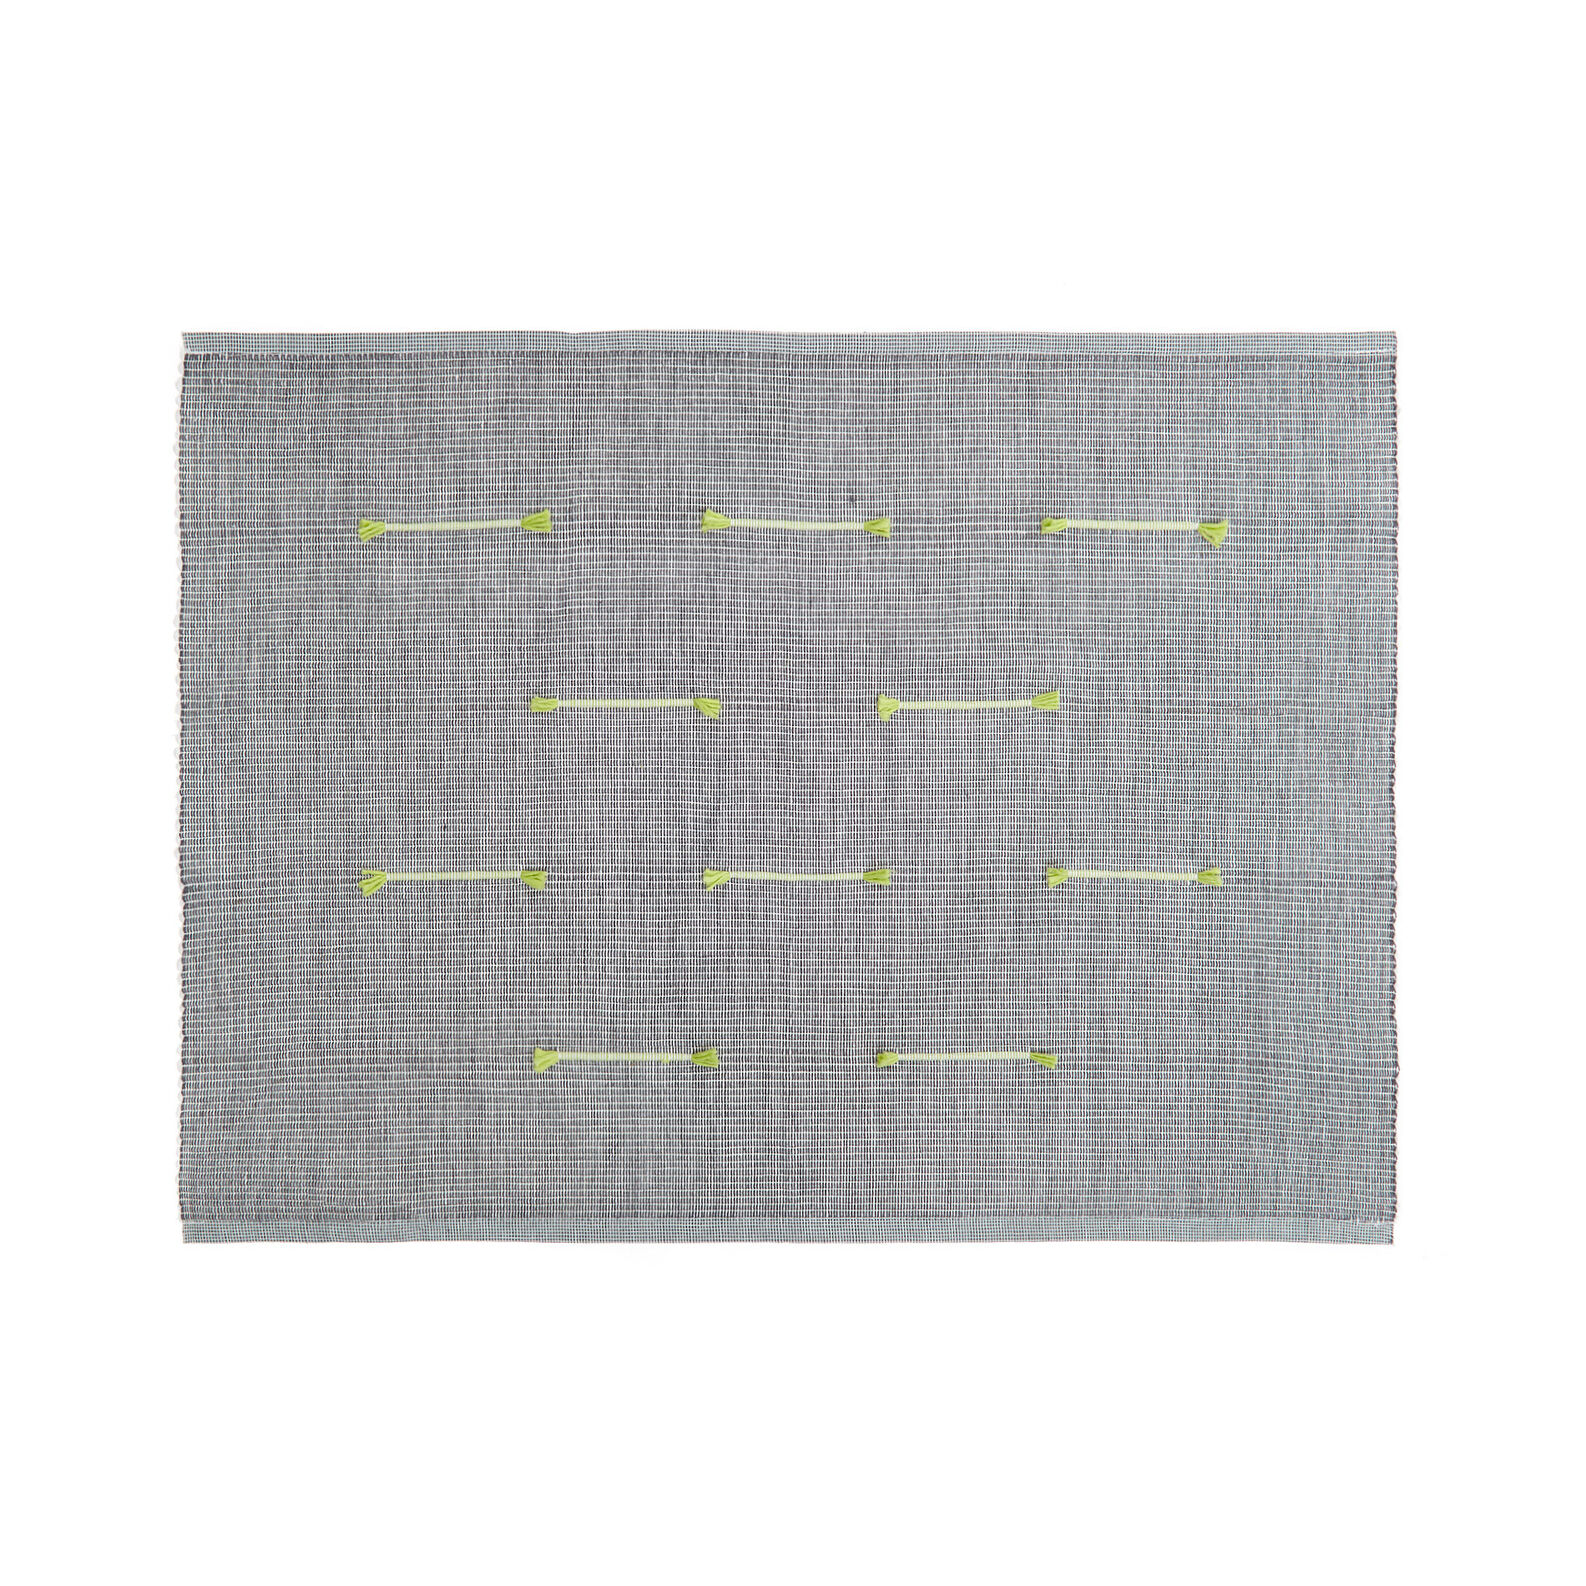 100% cotton table mat with dobby weave